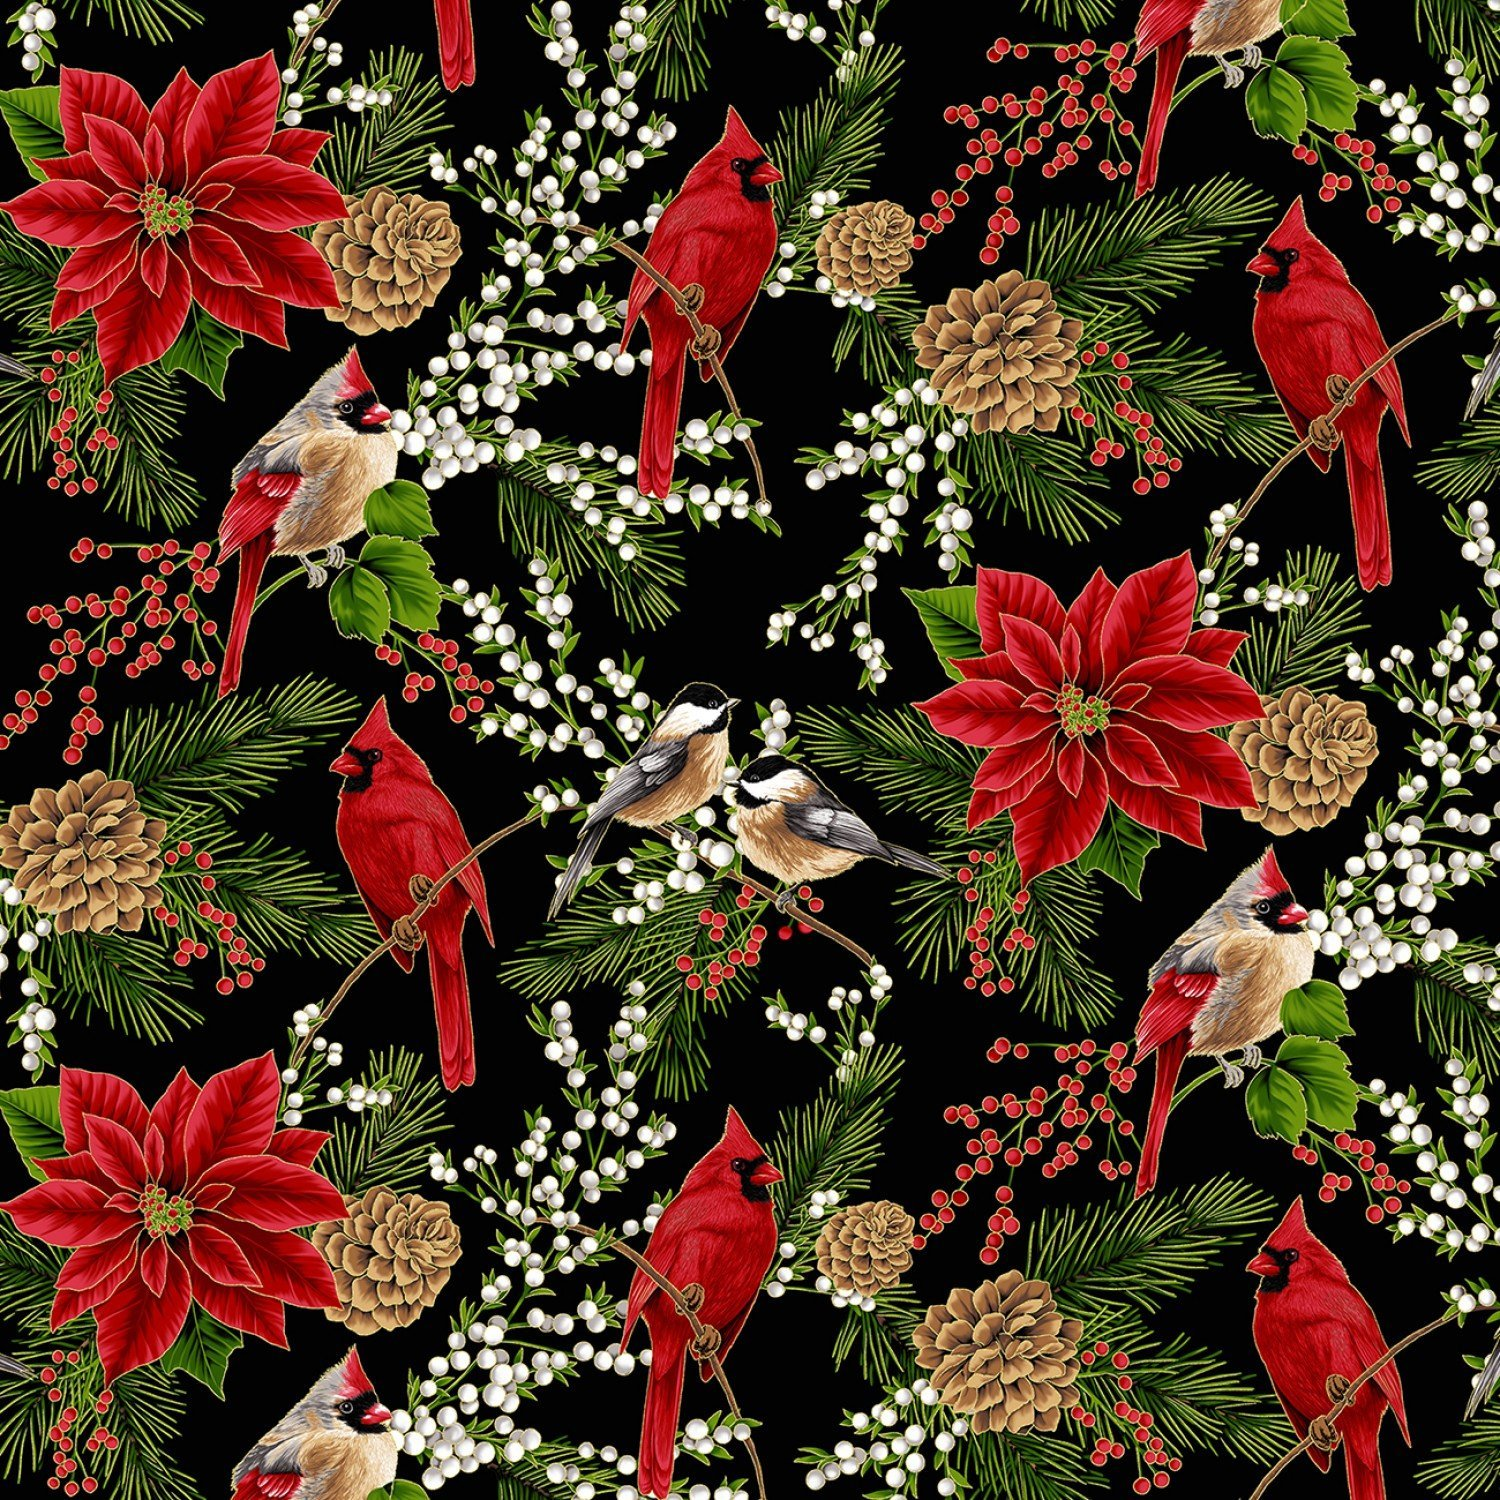 Hoffman Holiday Decadence S7700 4G Black Gold Cardinals Chickadees Poinsettias